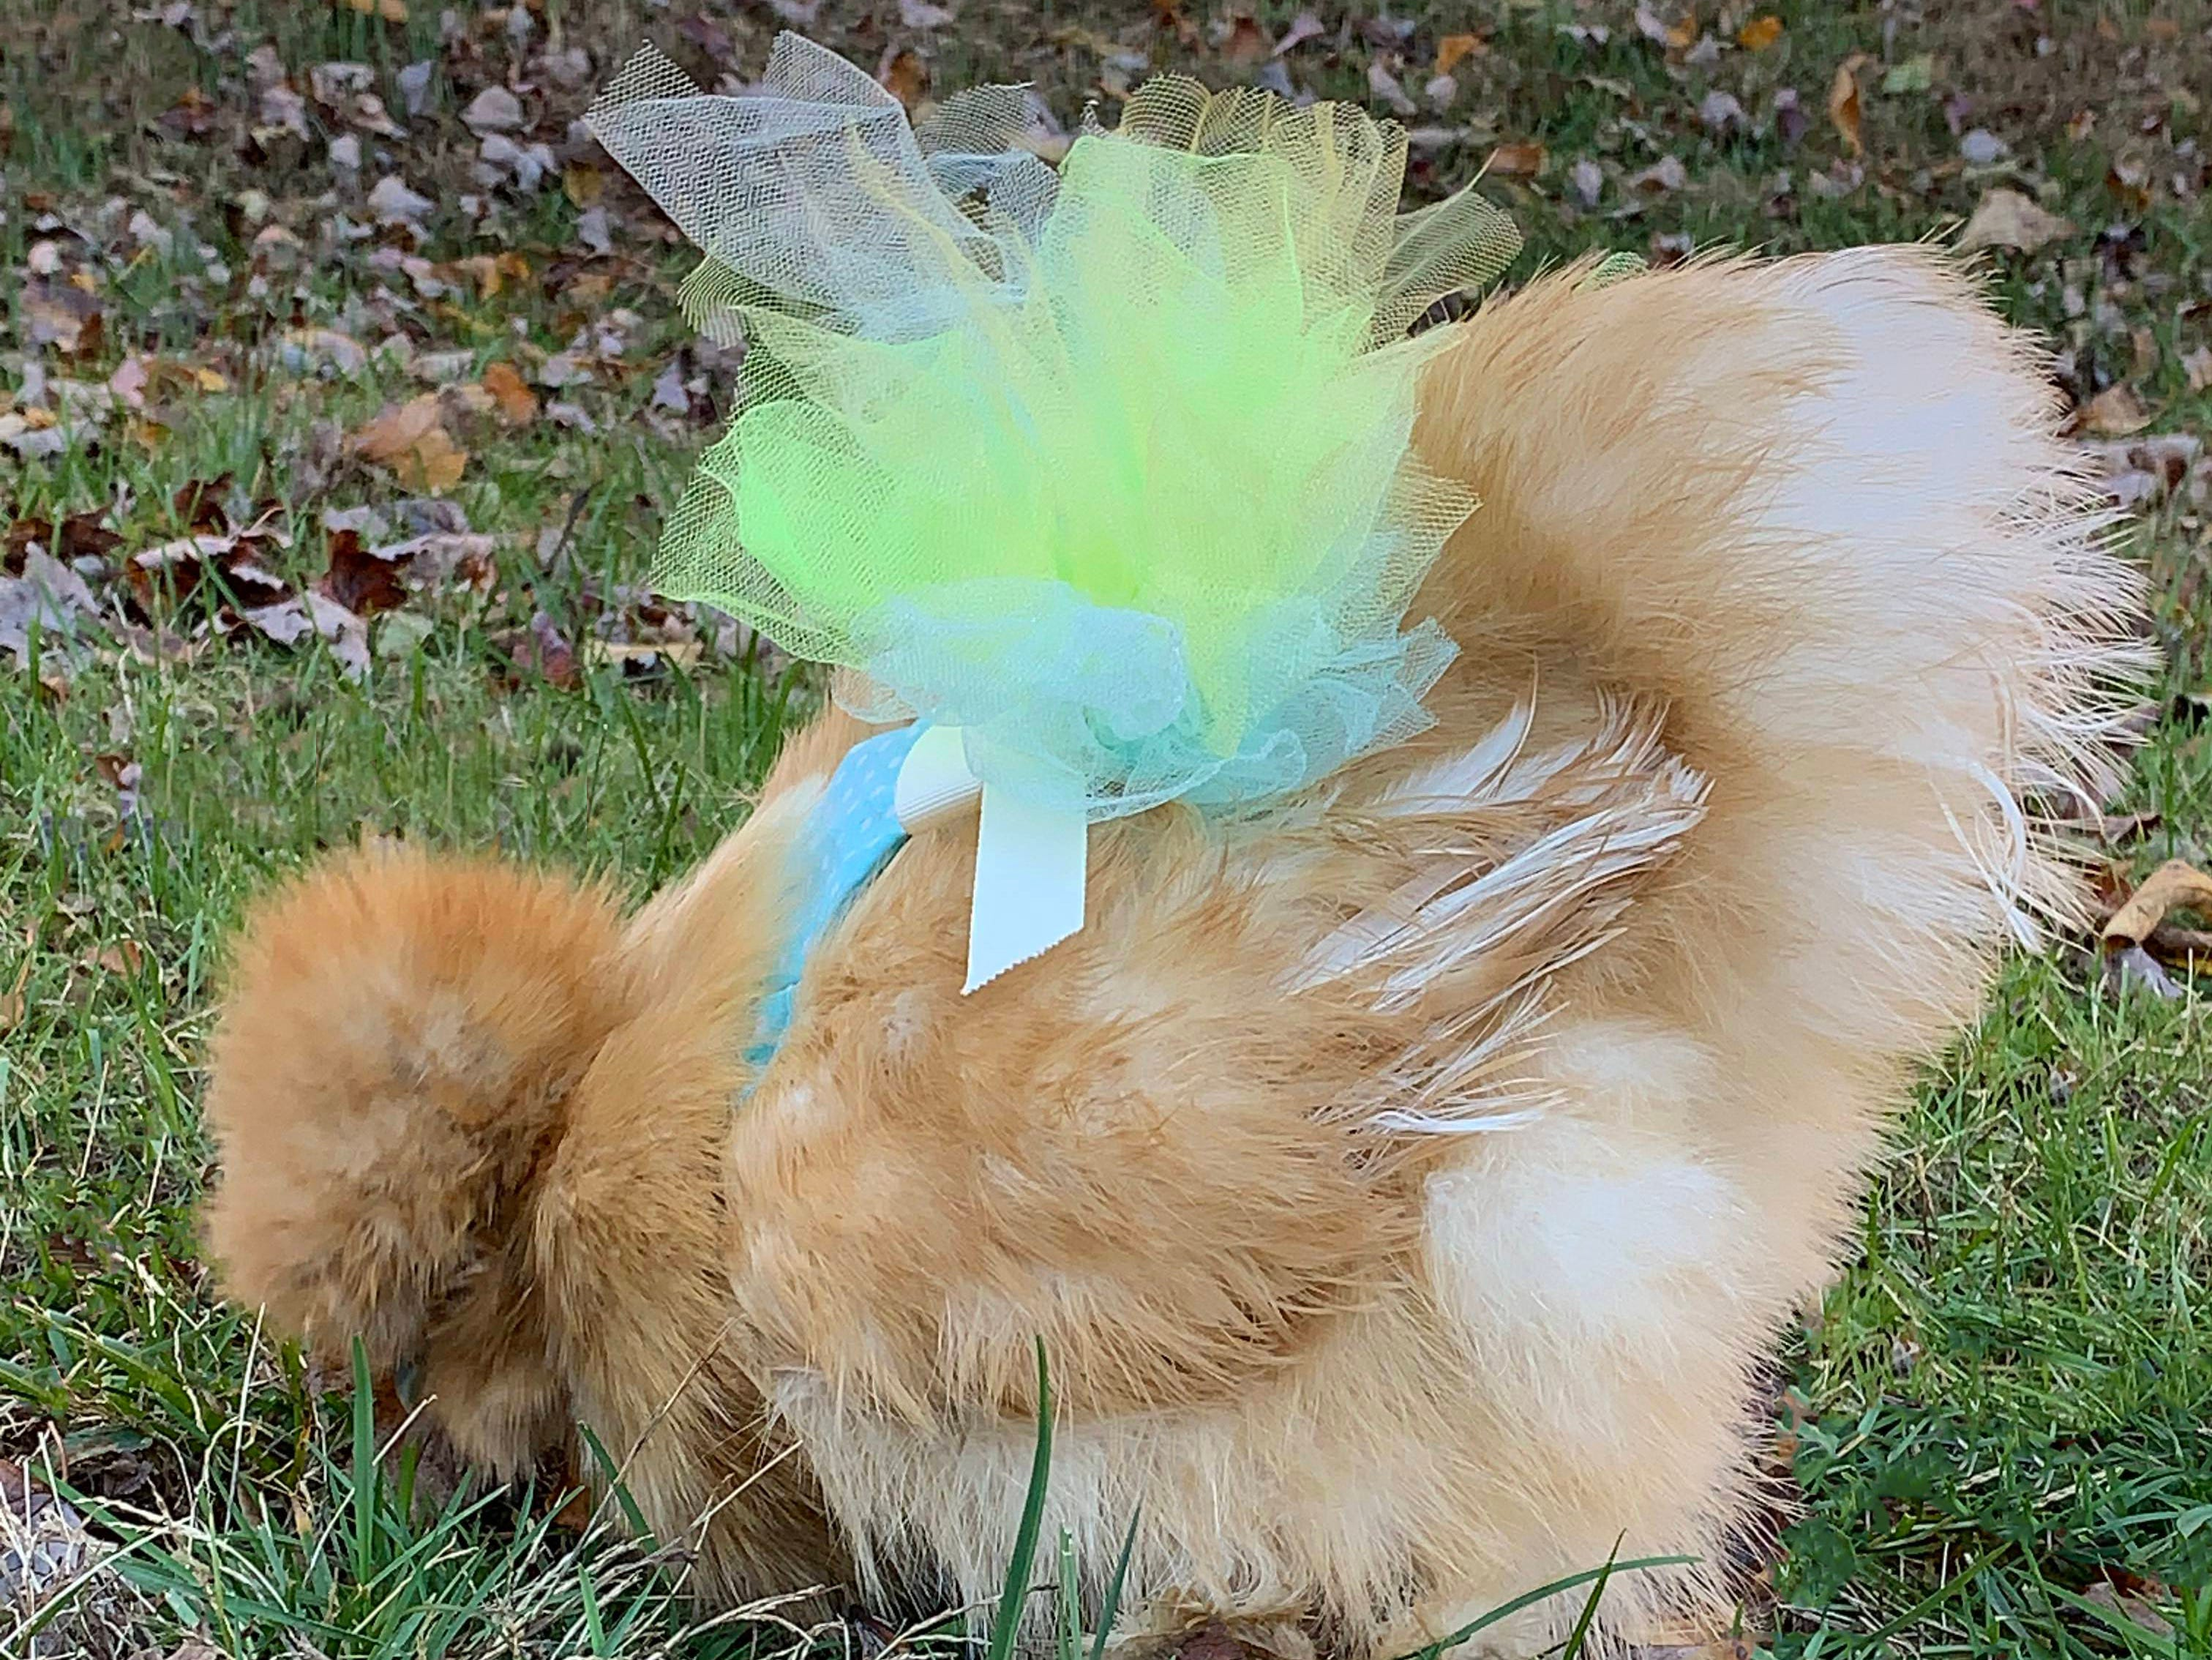 Among new products at Connecticut-based My Pet Chicken this year are tutus.